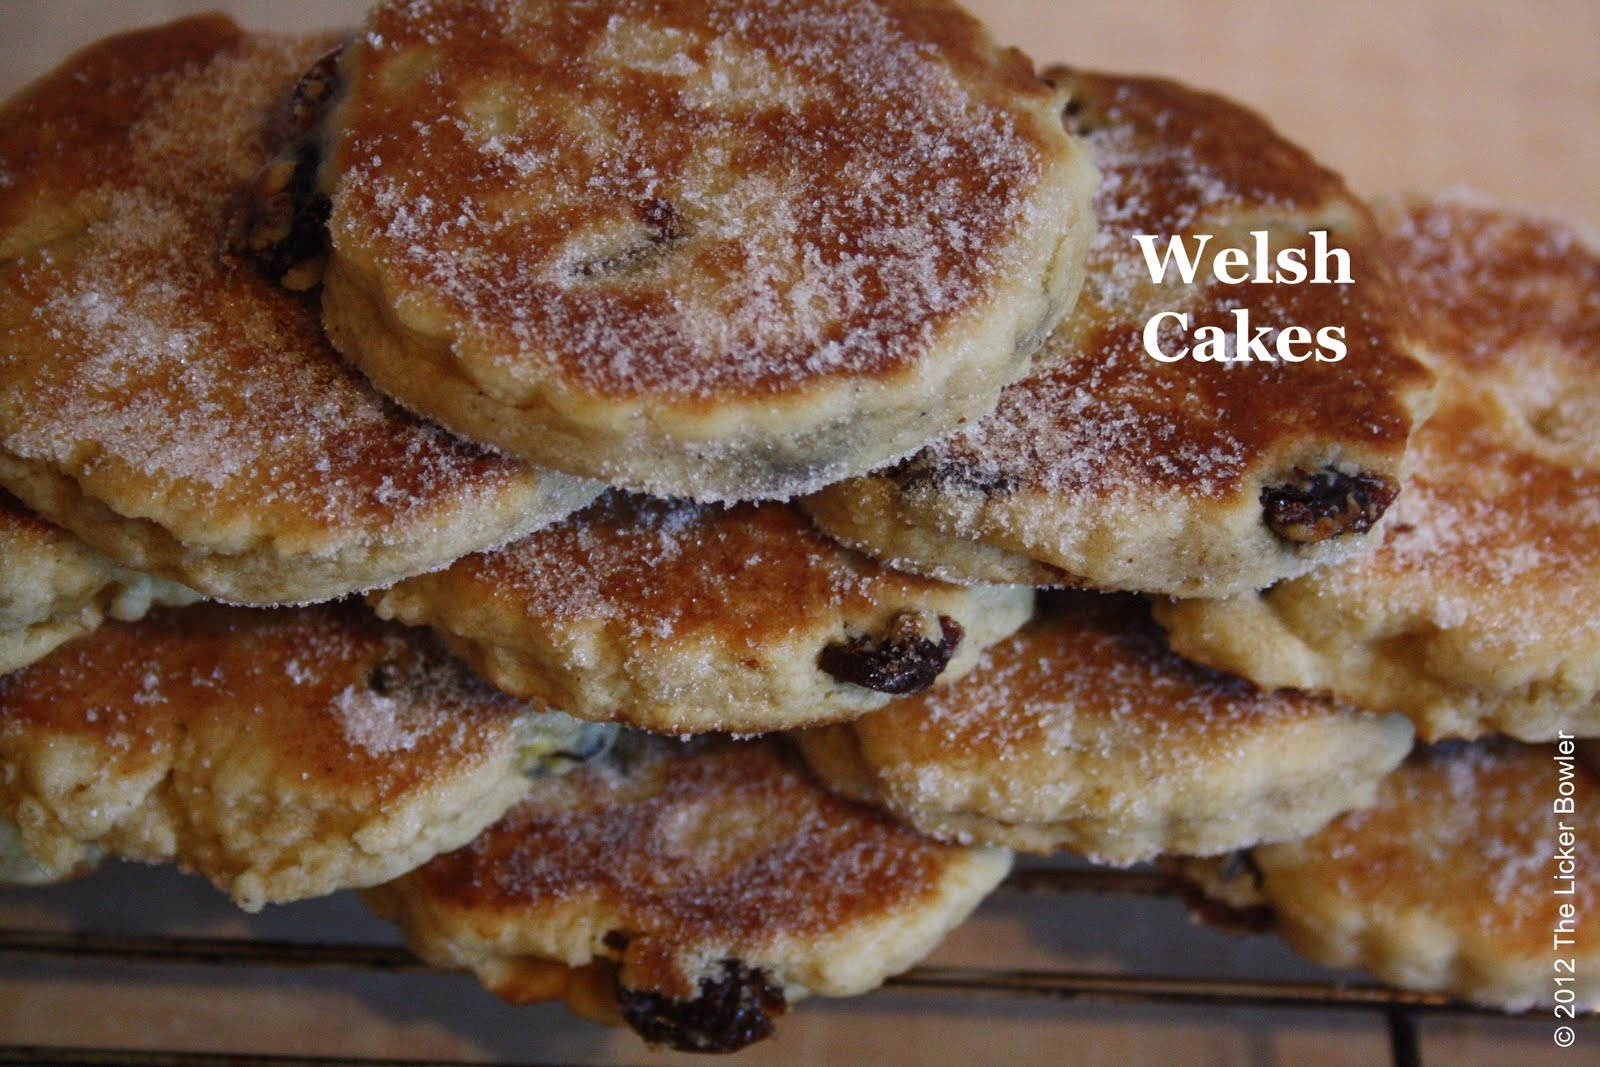 How To Make Welsh Cakes In The Oven